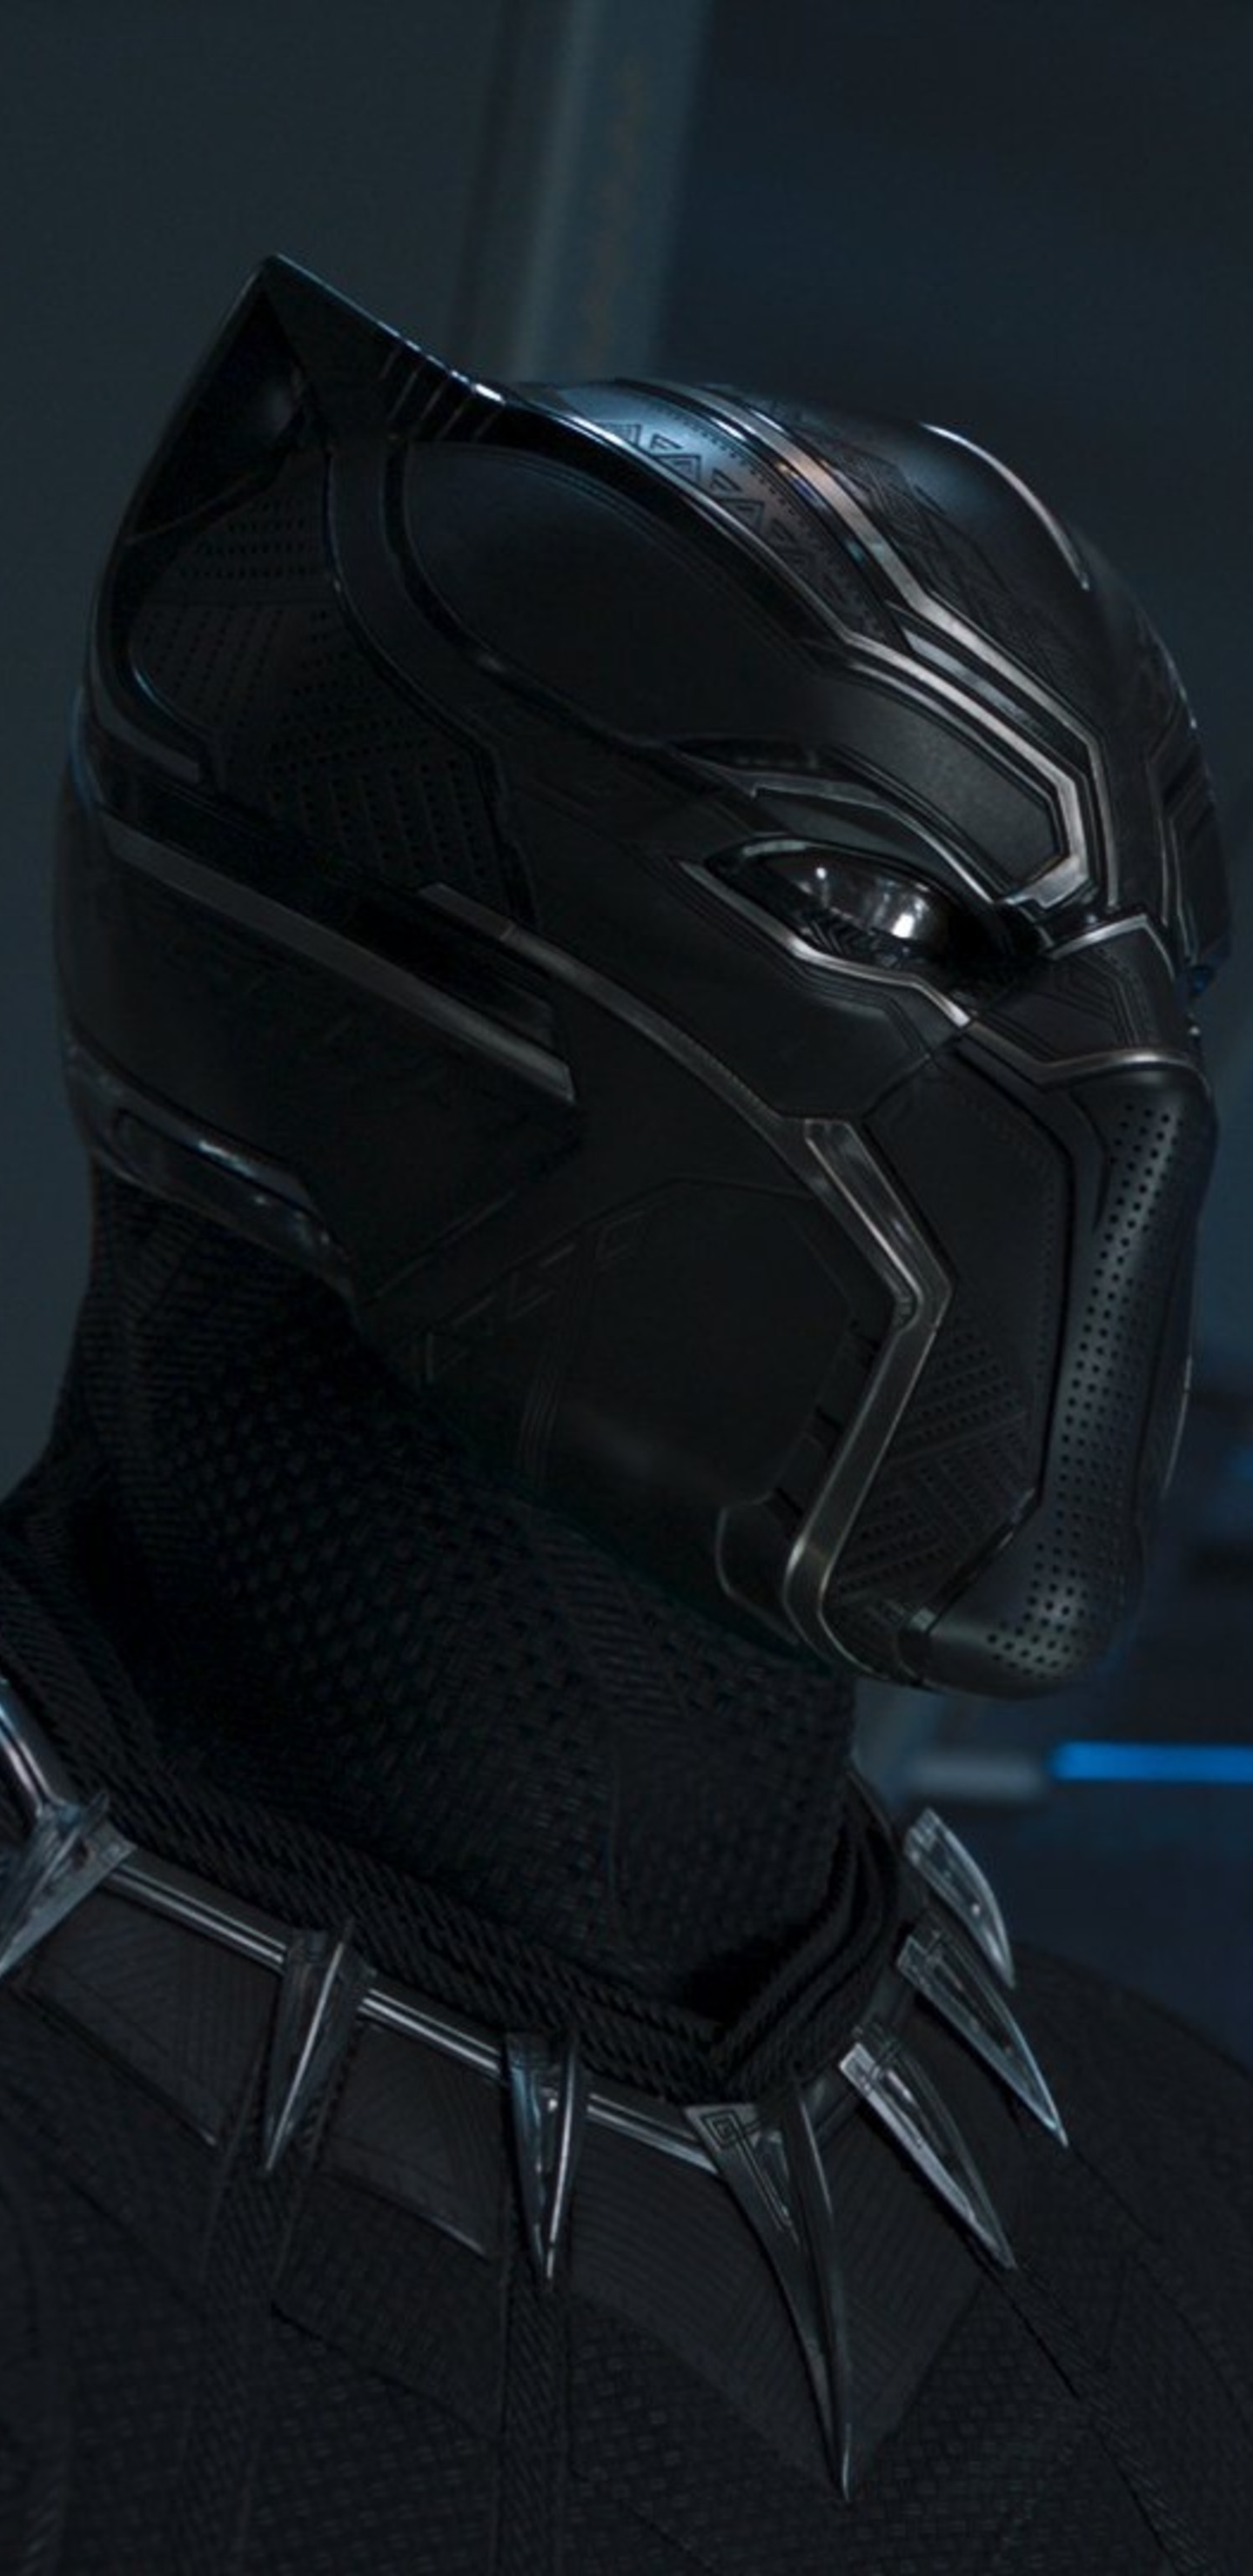 1440x2960 Black Panther Movie 2018 Hd Samsung Galaxy Note 9 8 S9 S8